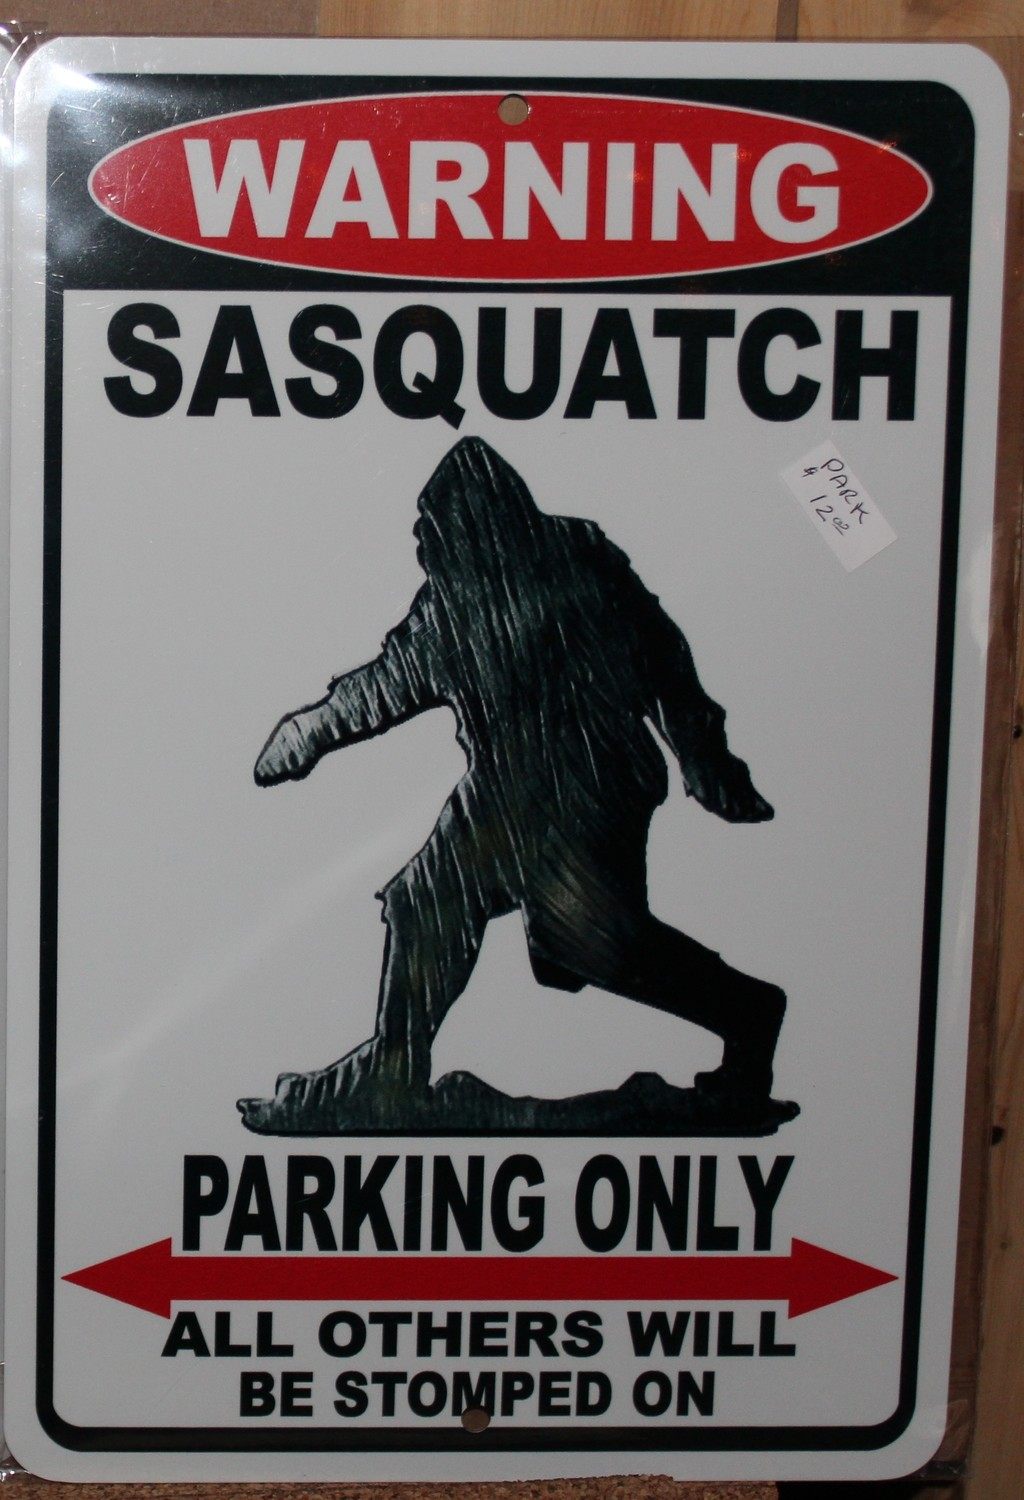 Warning Sasquatch Parking Only Sign